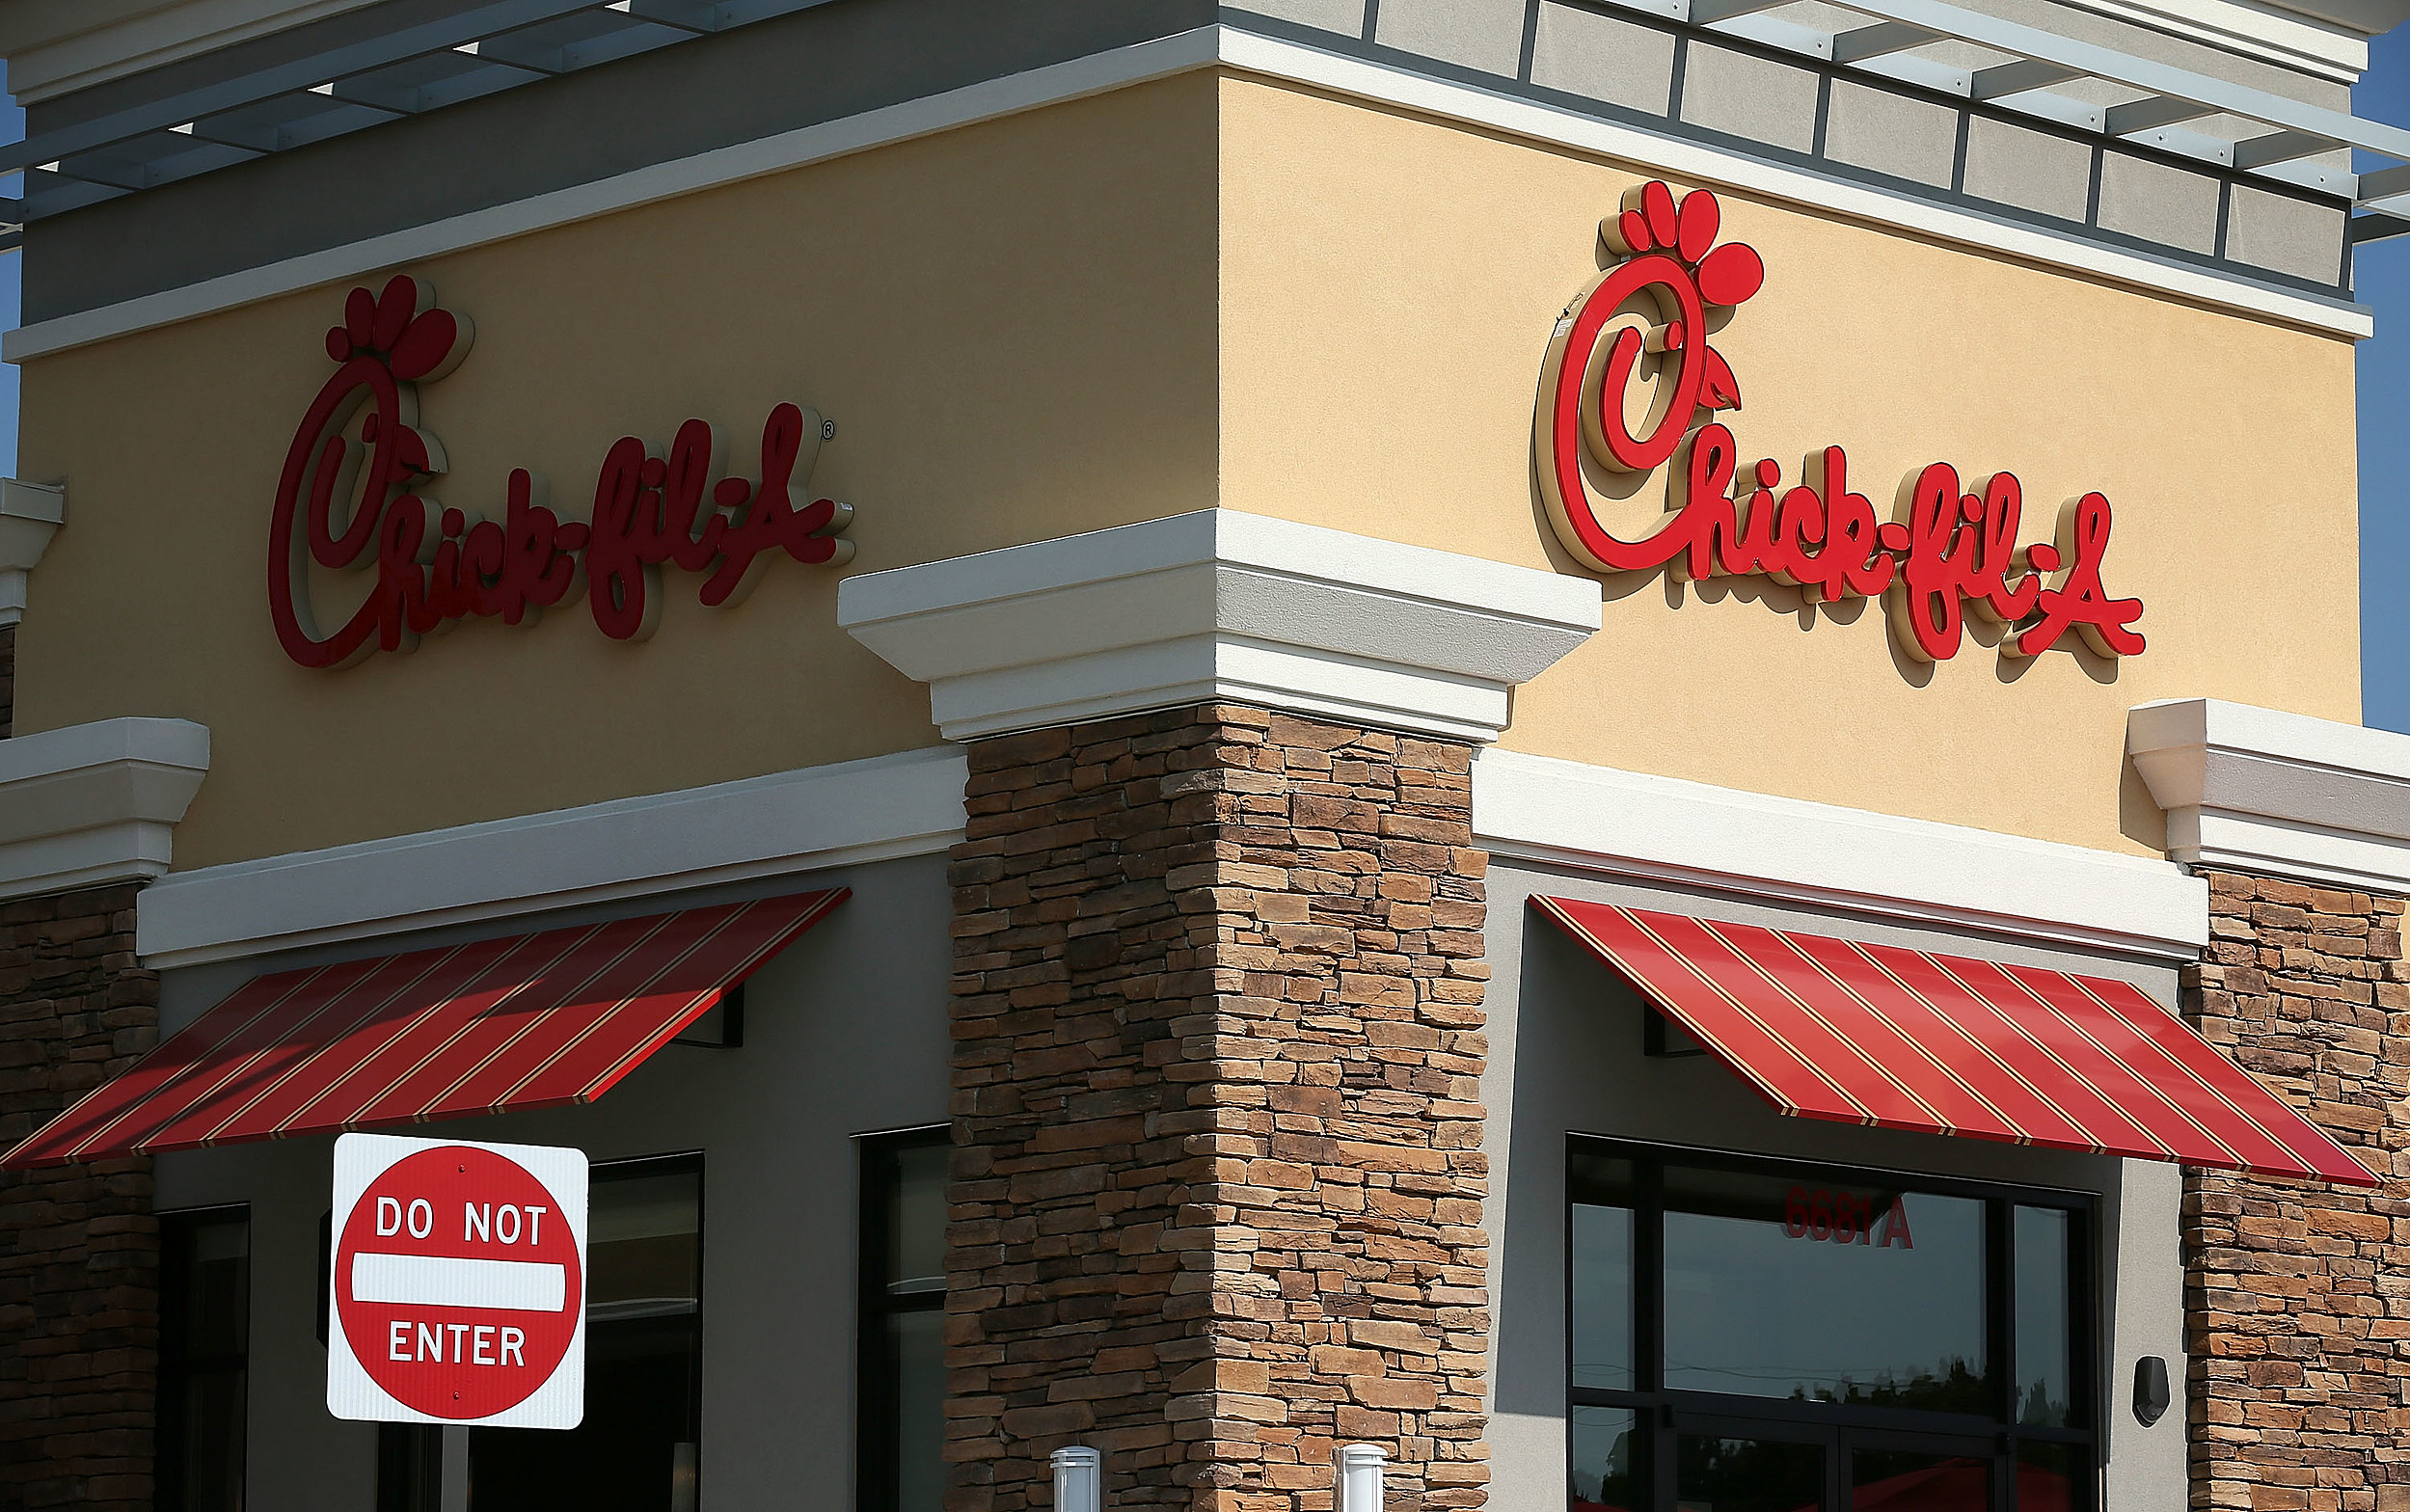 Chick Fil A Great American Steakhouse Plan Airway Locations